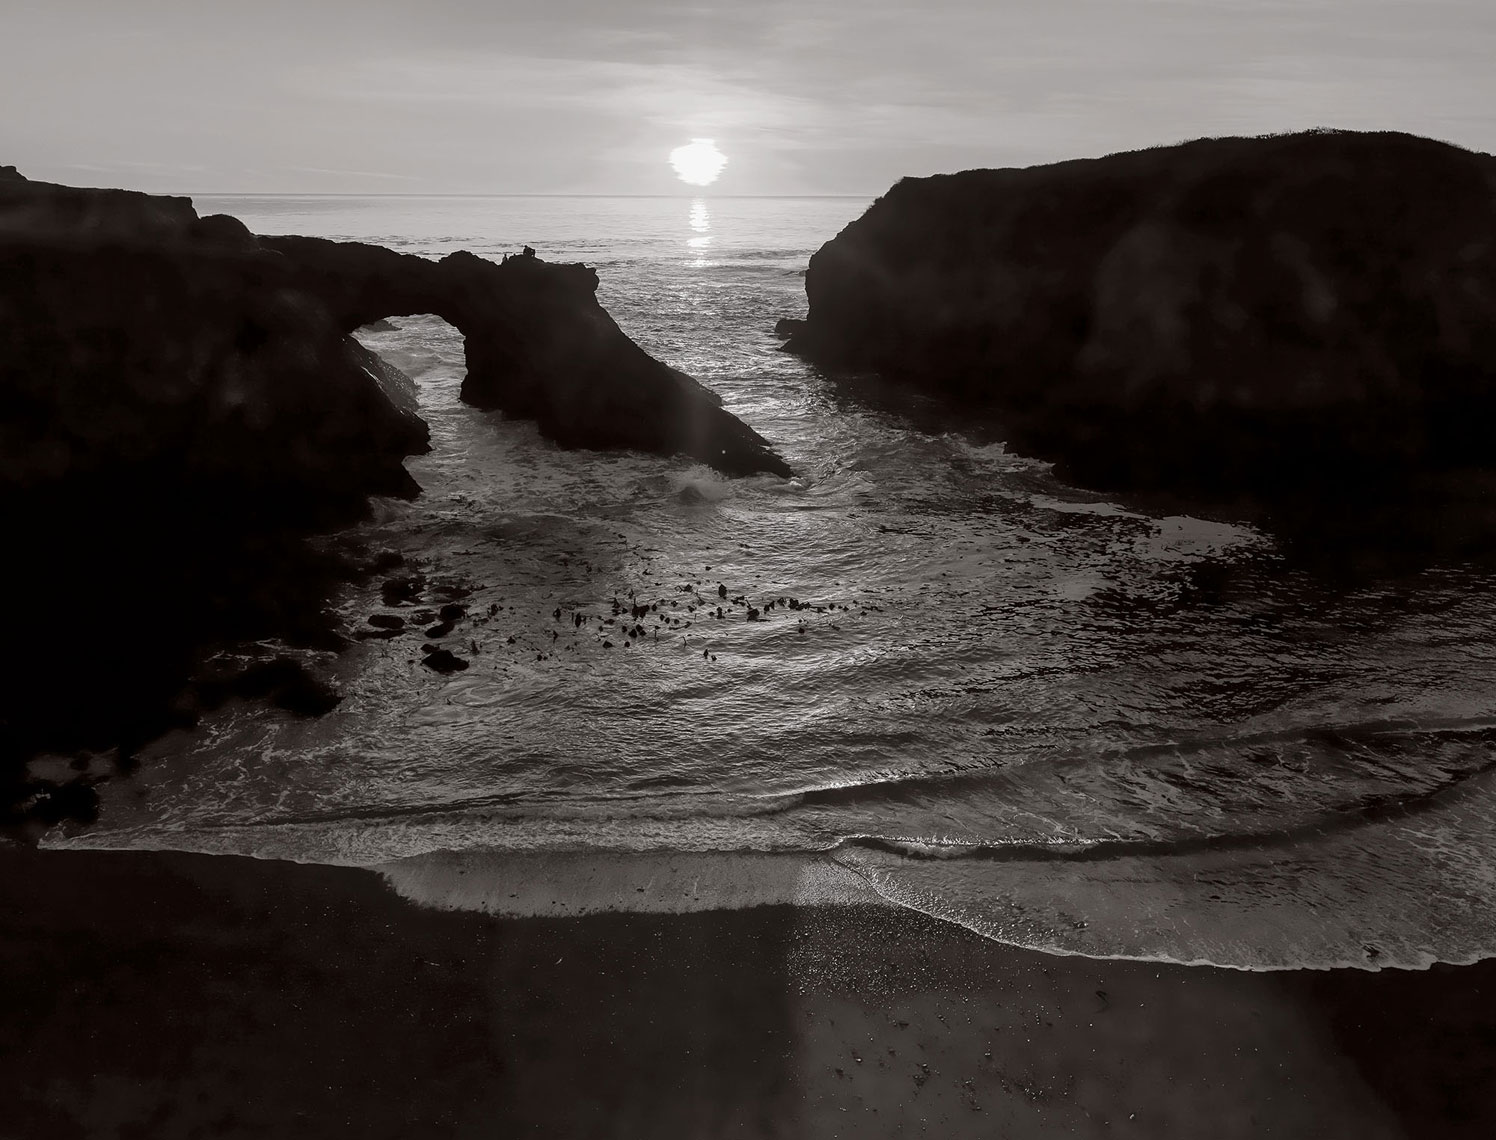 jeff-green-rocky-ocean-shore-at-sunset-california-black-and-white